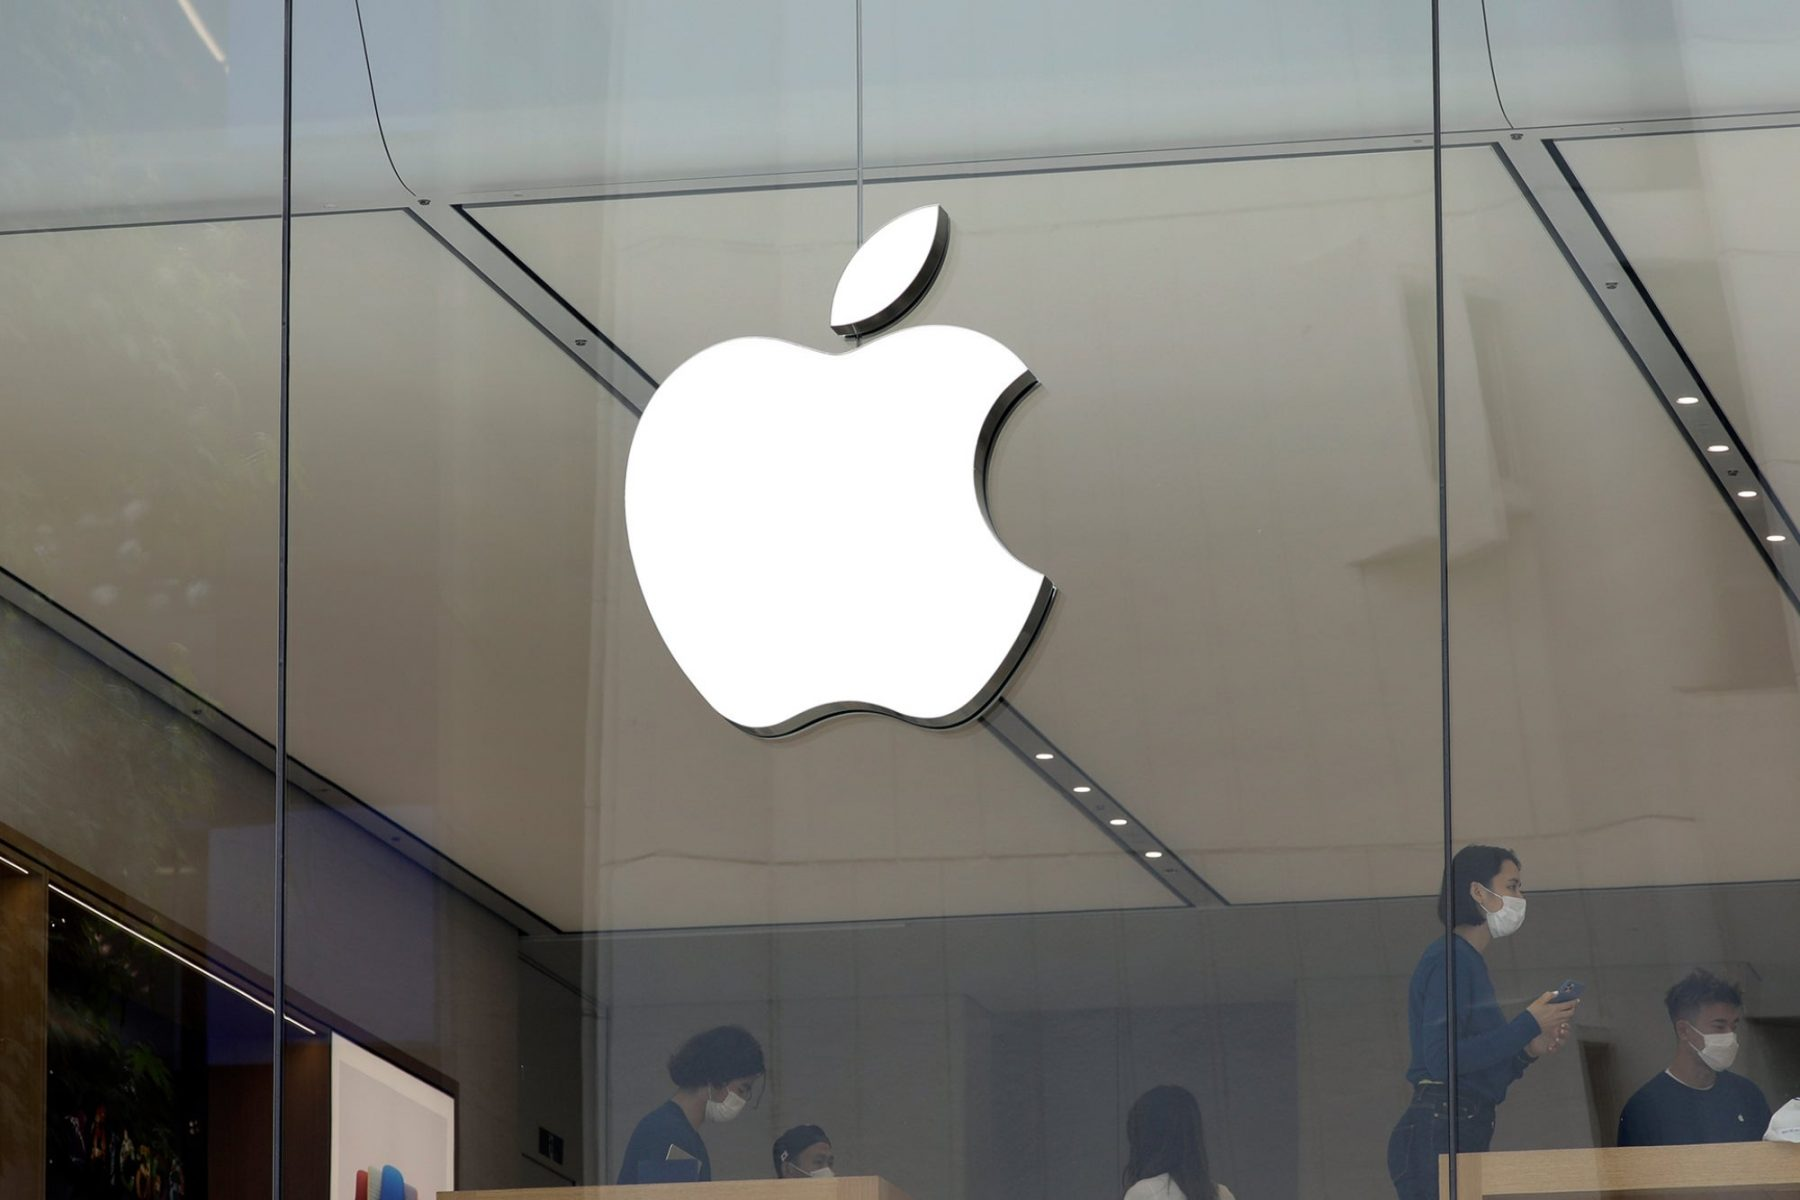 apple-employees-reportedly-won't-return-to-office-until-next-year